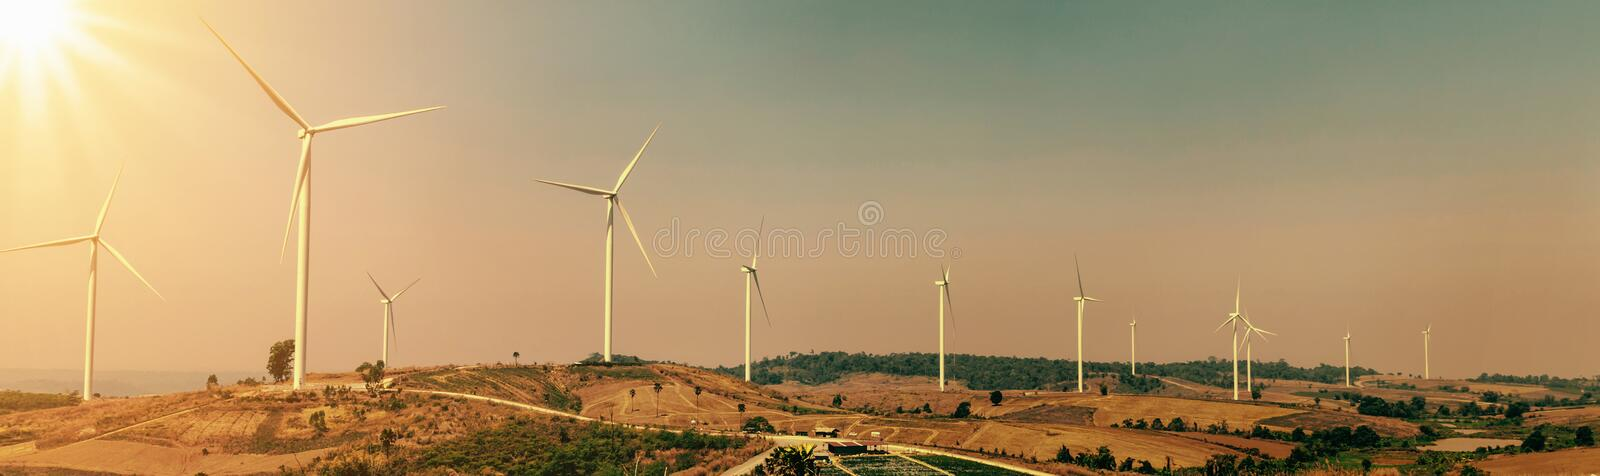 wind turbine on hill with sunlight. concept eco power energy in stock photography